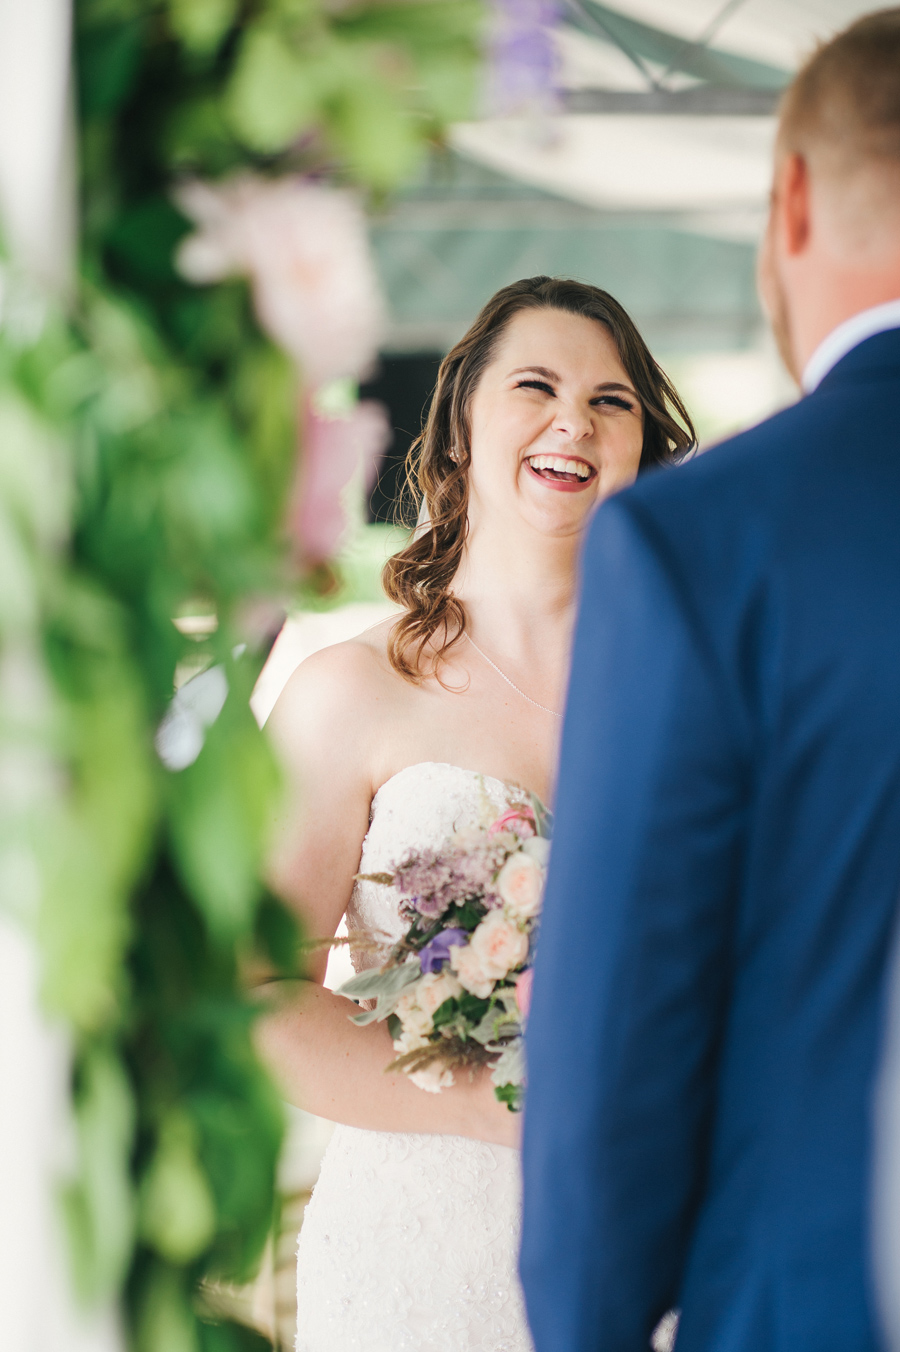 bride laughing during the wedding ceremony